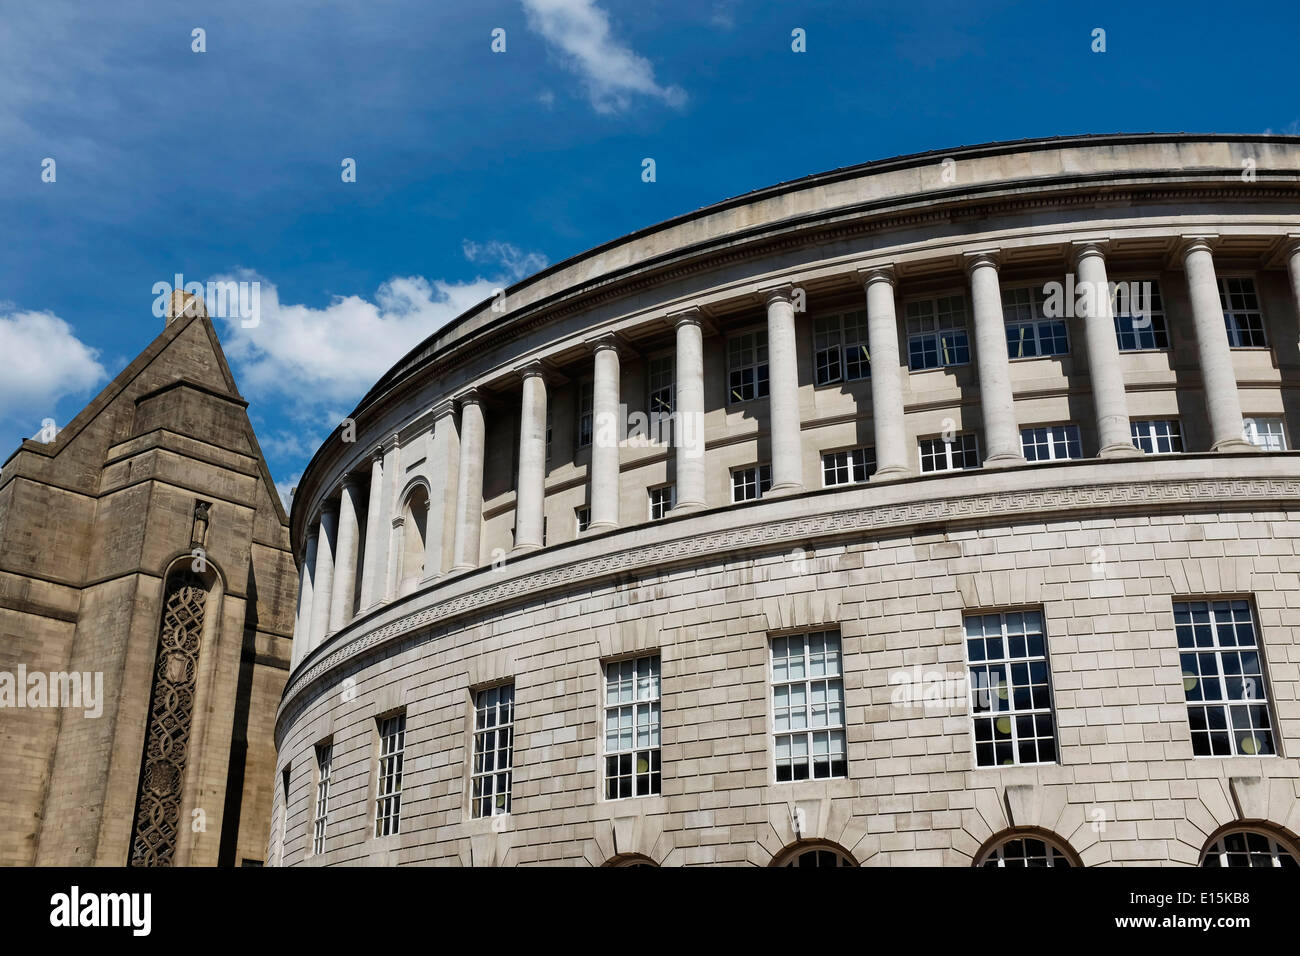 Detail of Manchester Central Library UK - Stock Image